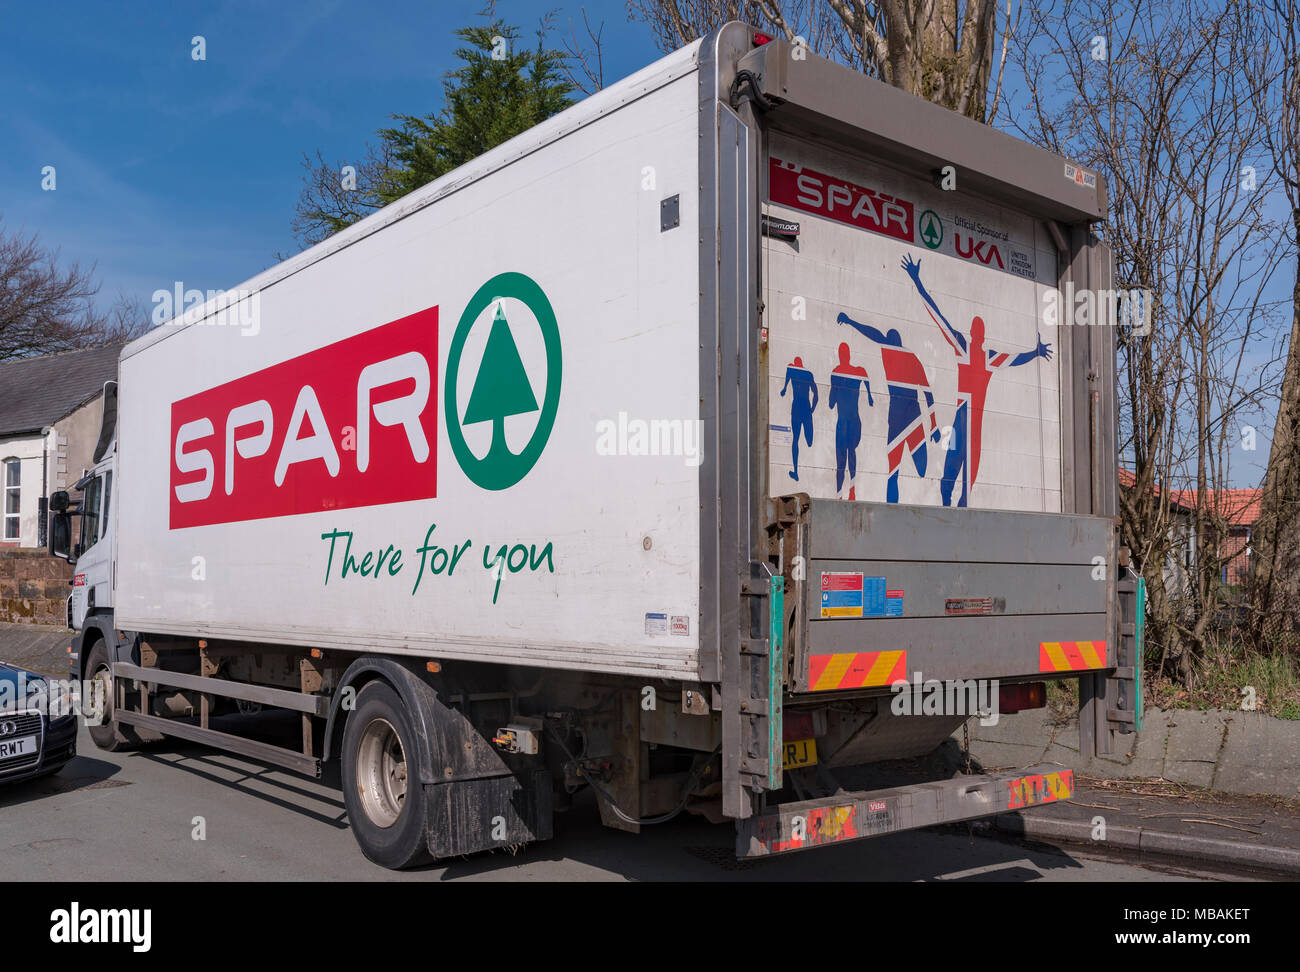 24a3b92eaa grocery store delivery lorry. - Stock Image grocery store delivery lorry.  MBAKET (RM). North Wales